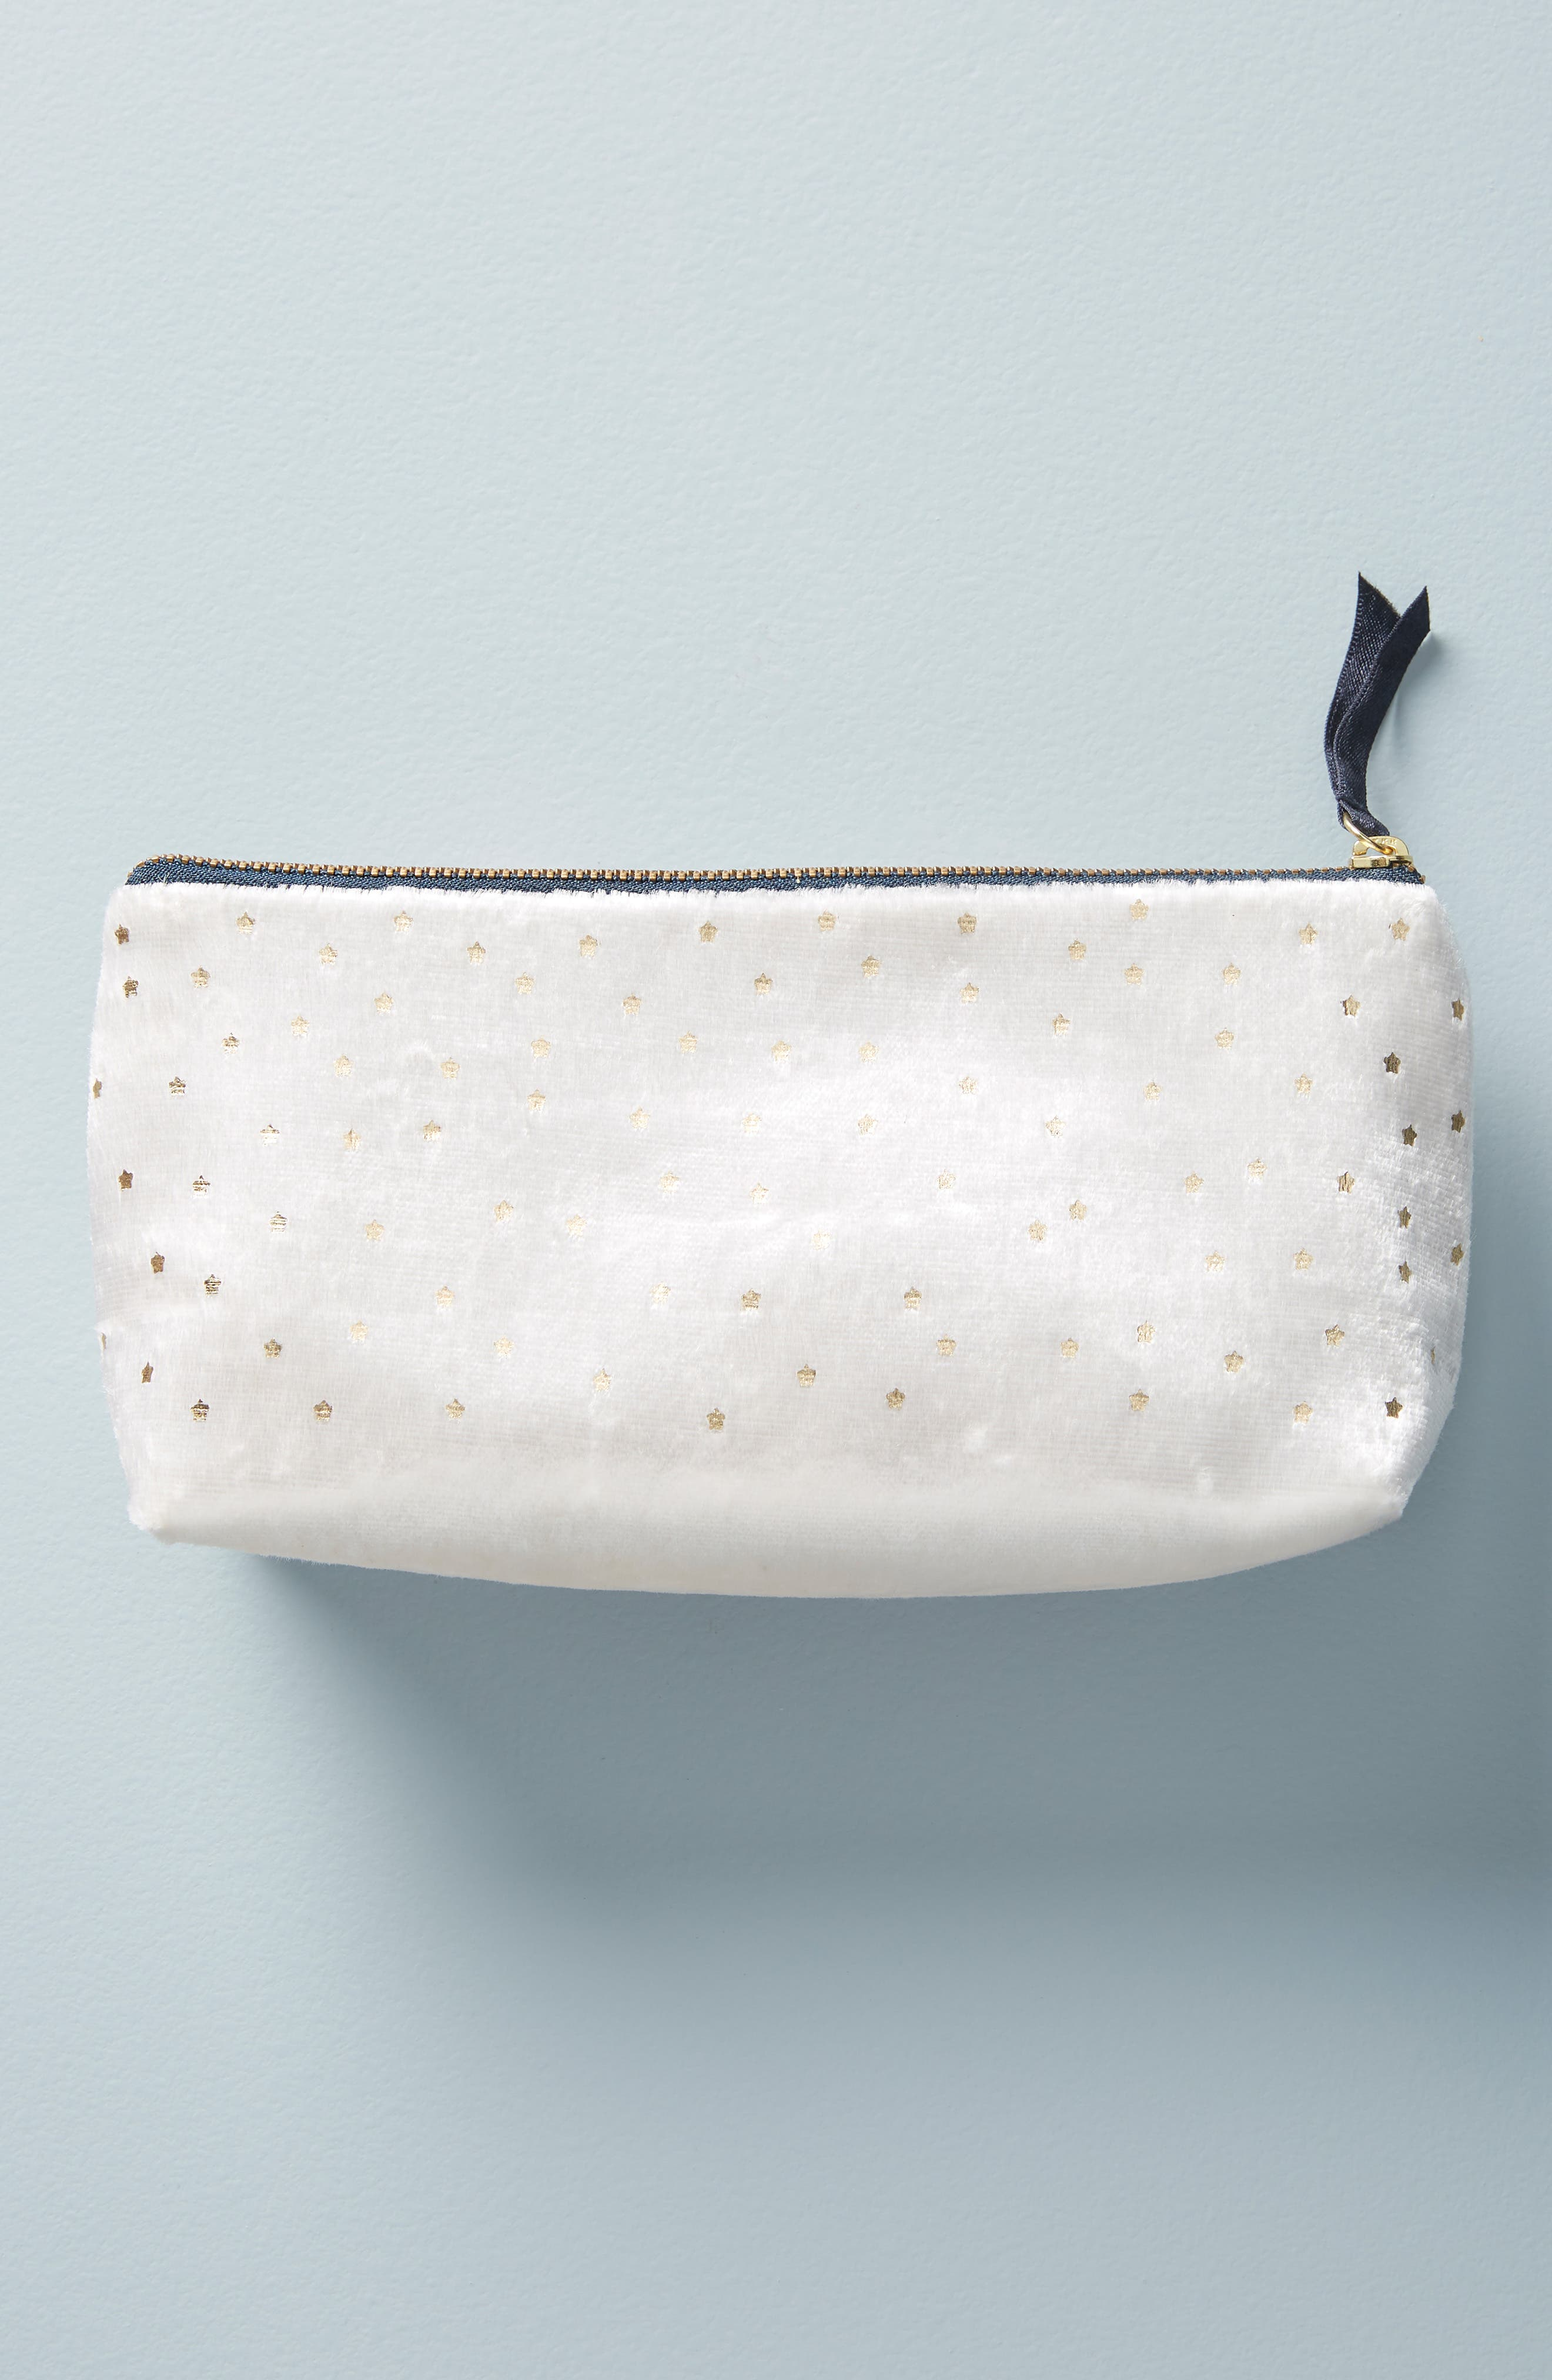 ANTHROPOLOGIE, Claire Embellished Pencil Pouch, Alternate thumbnail 2, color, 901